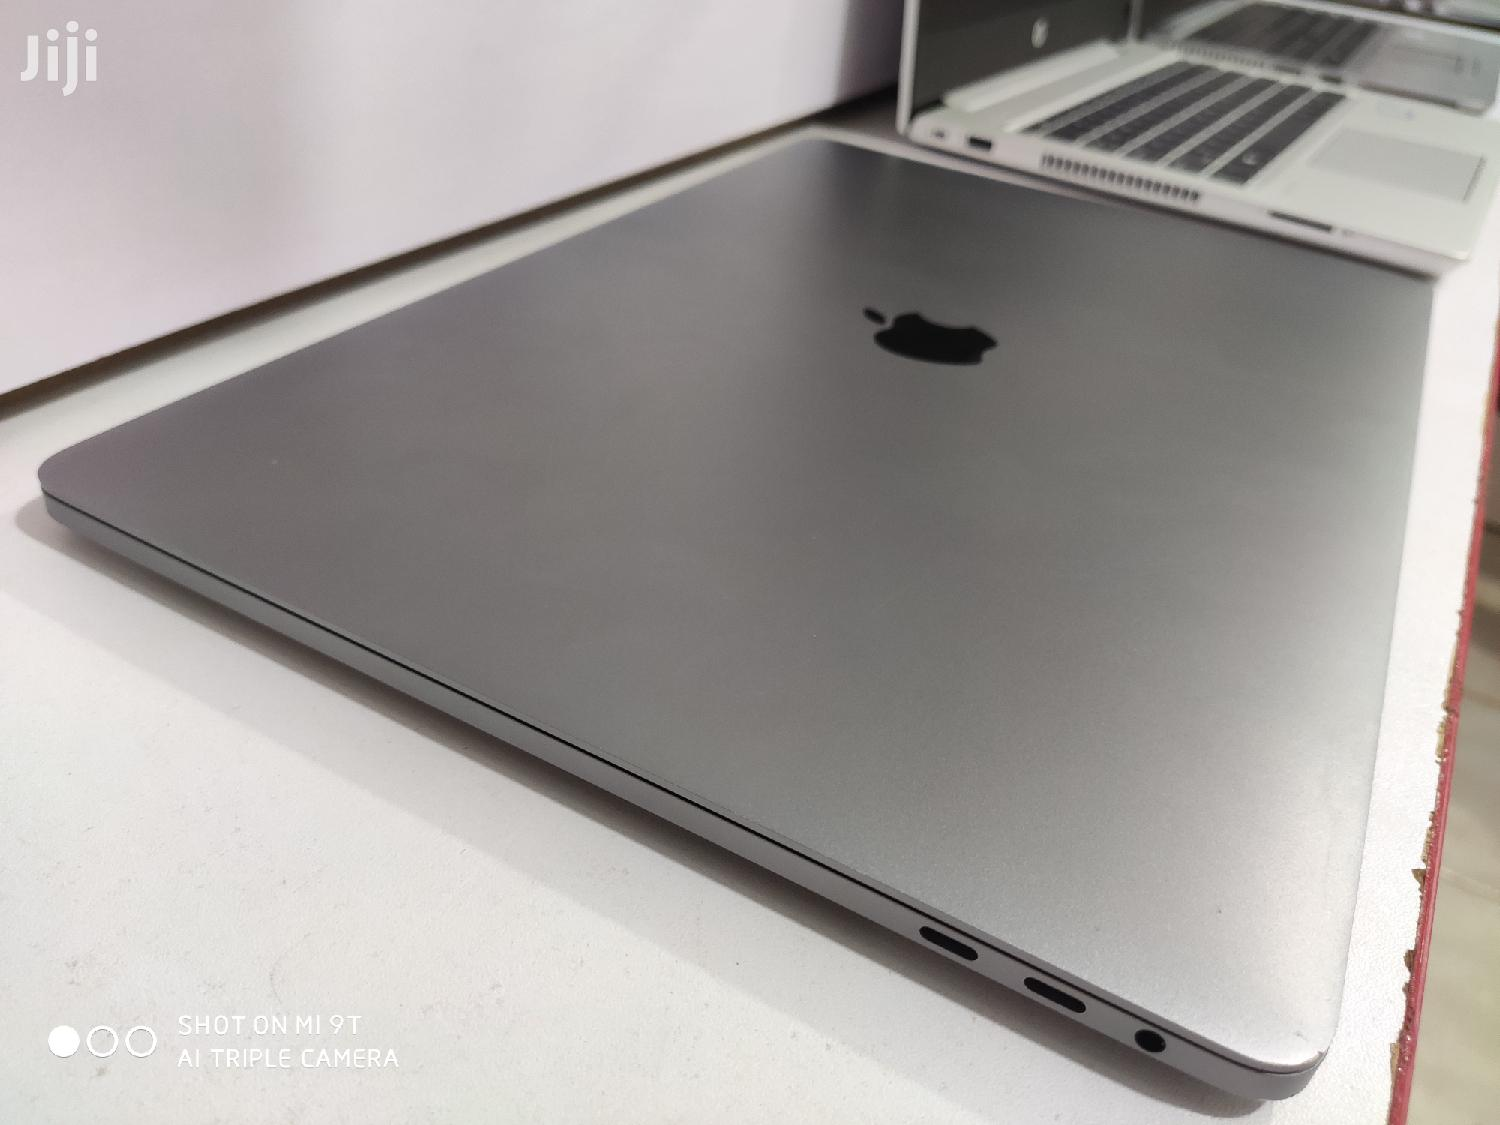 Archive: Laptop Apple MacBook Pro 16GB Intel Core i7 SSHD (Hybrid) 512GB